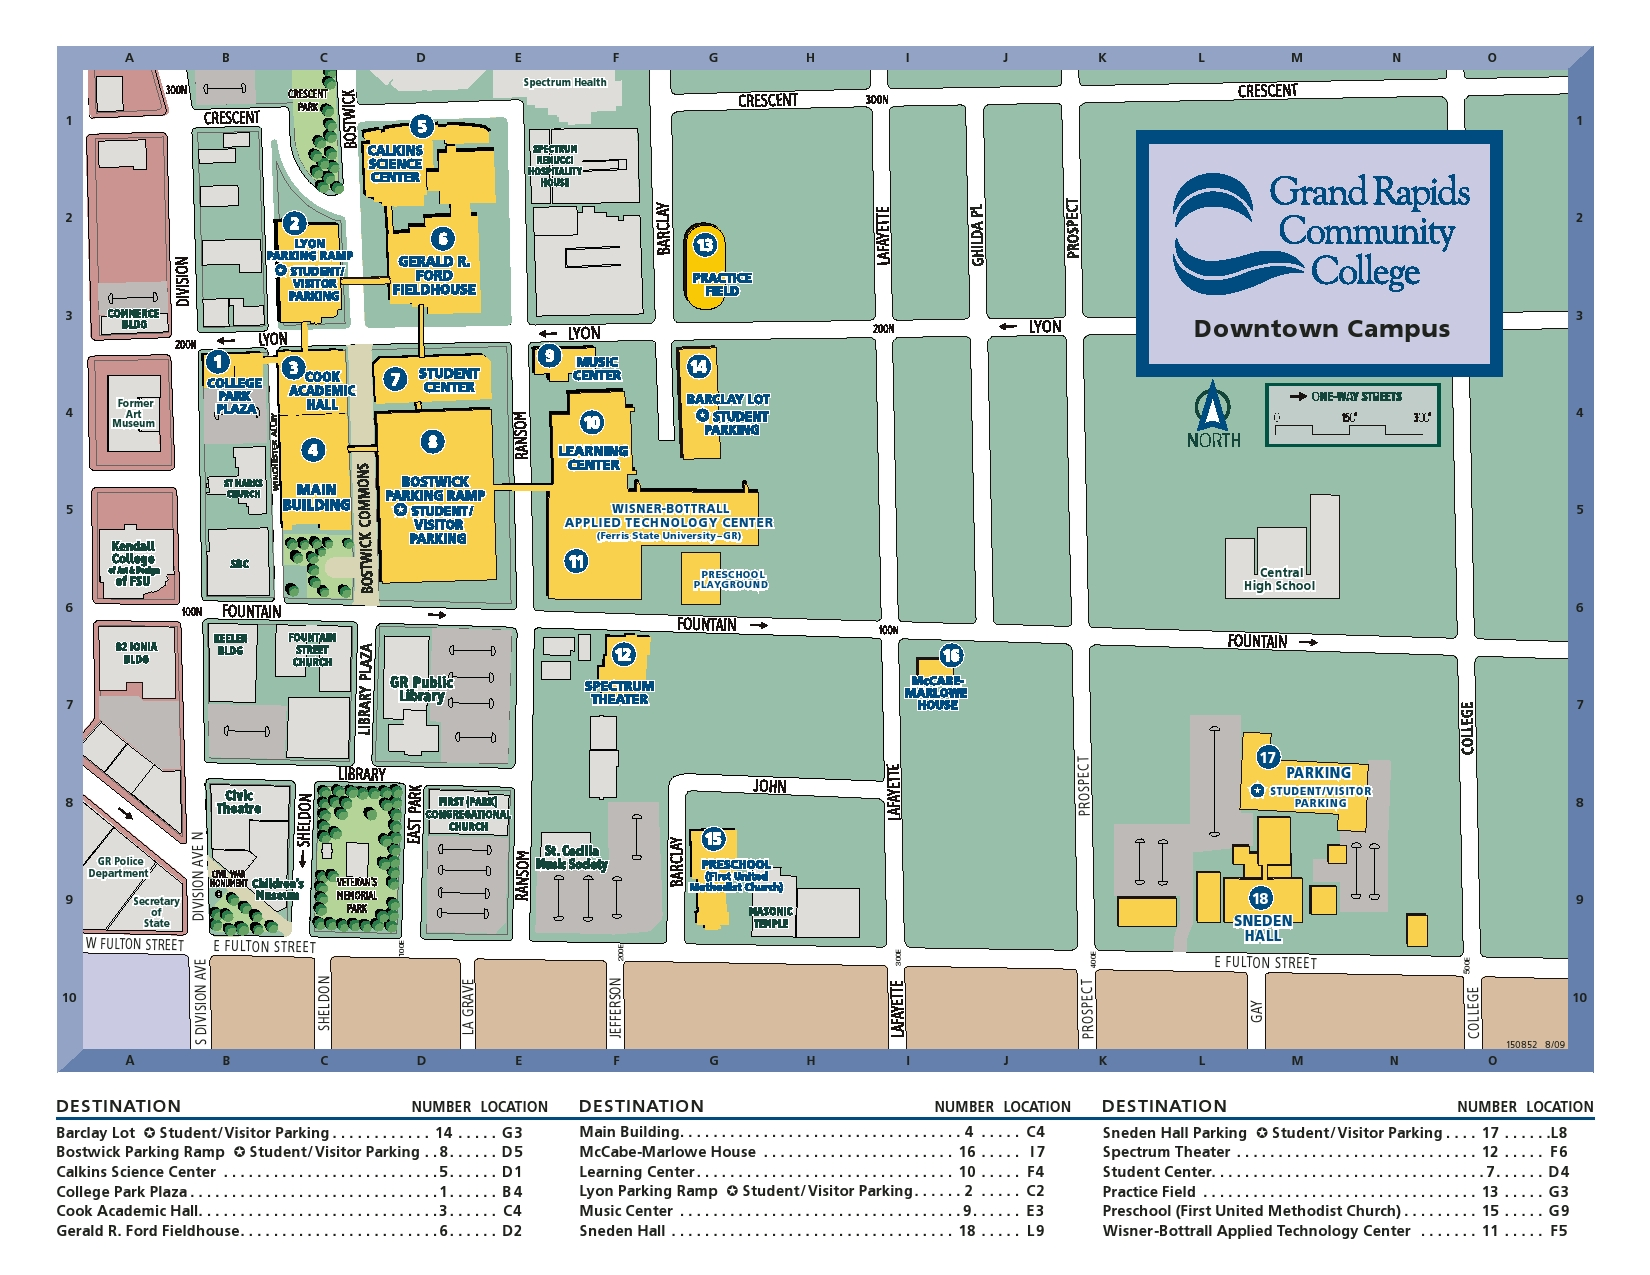 grand rapids community college campus map Many Places To Park Around Grcc To Avoid Early Semester Traffic grand rapids community college campus map